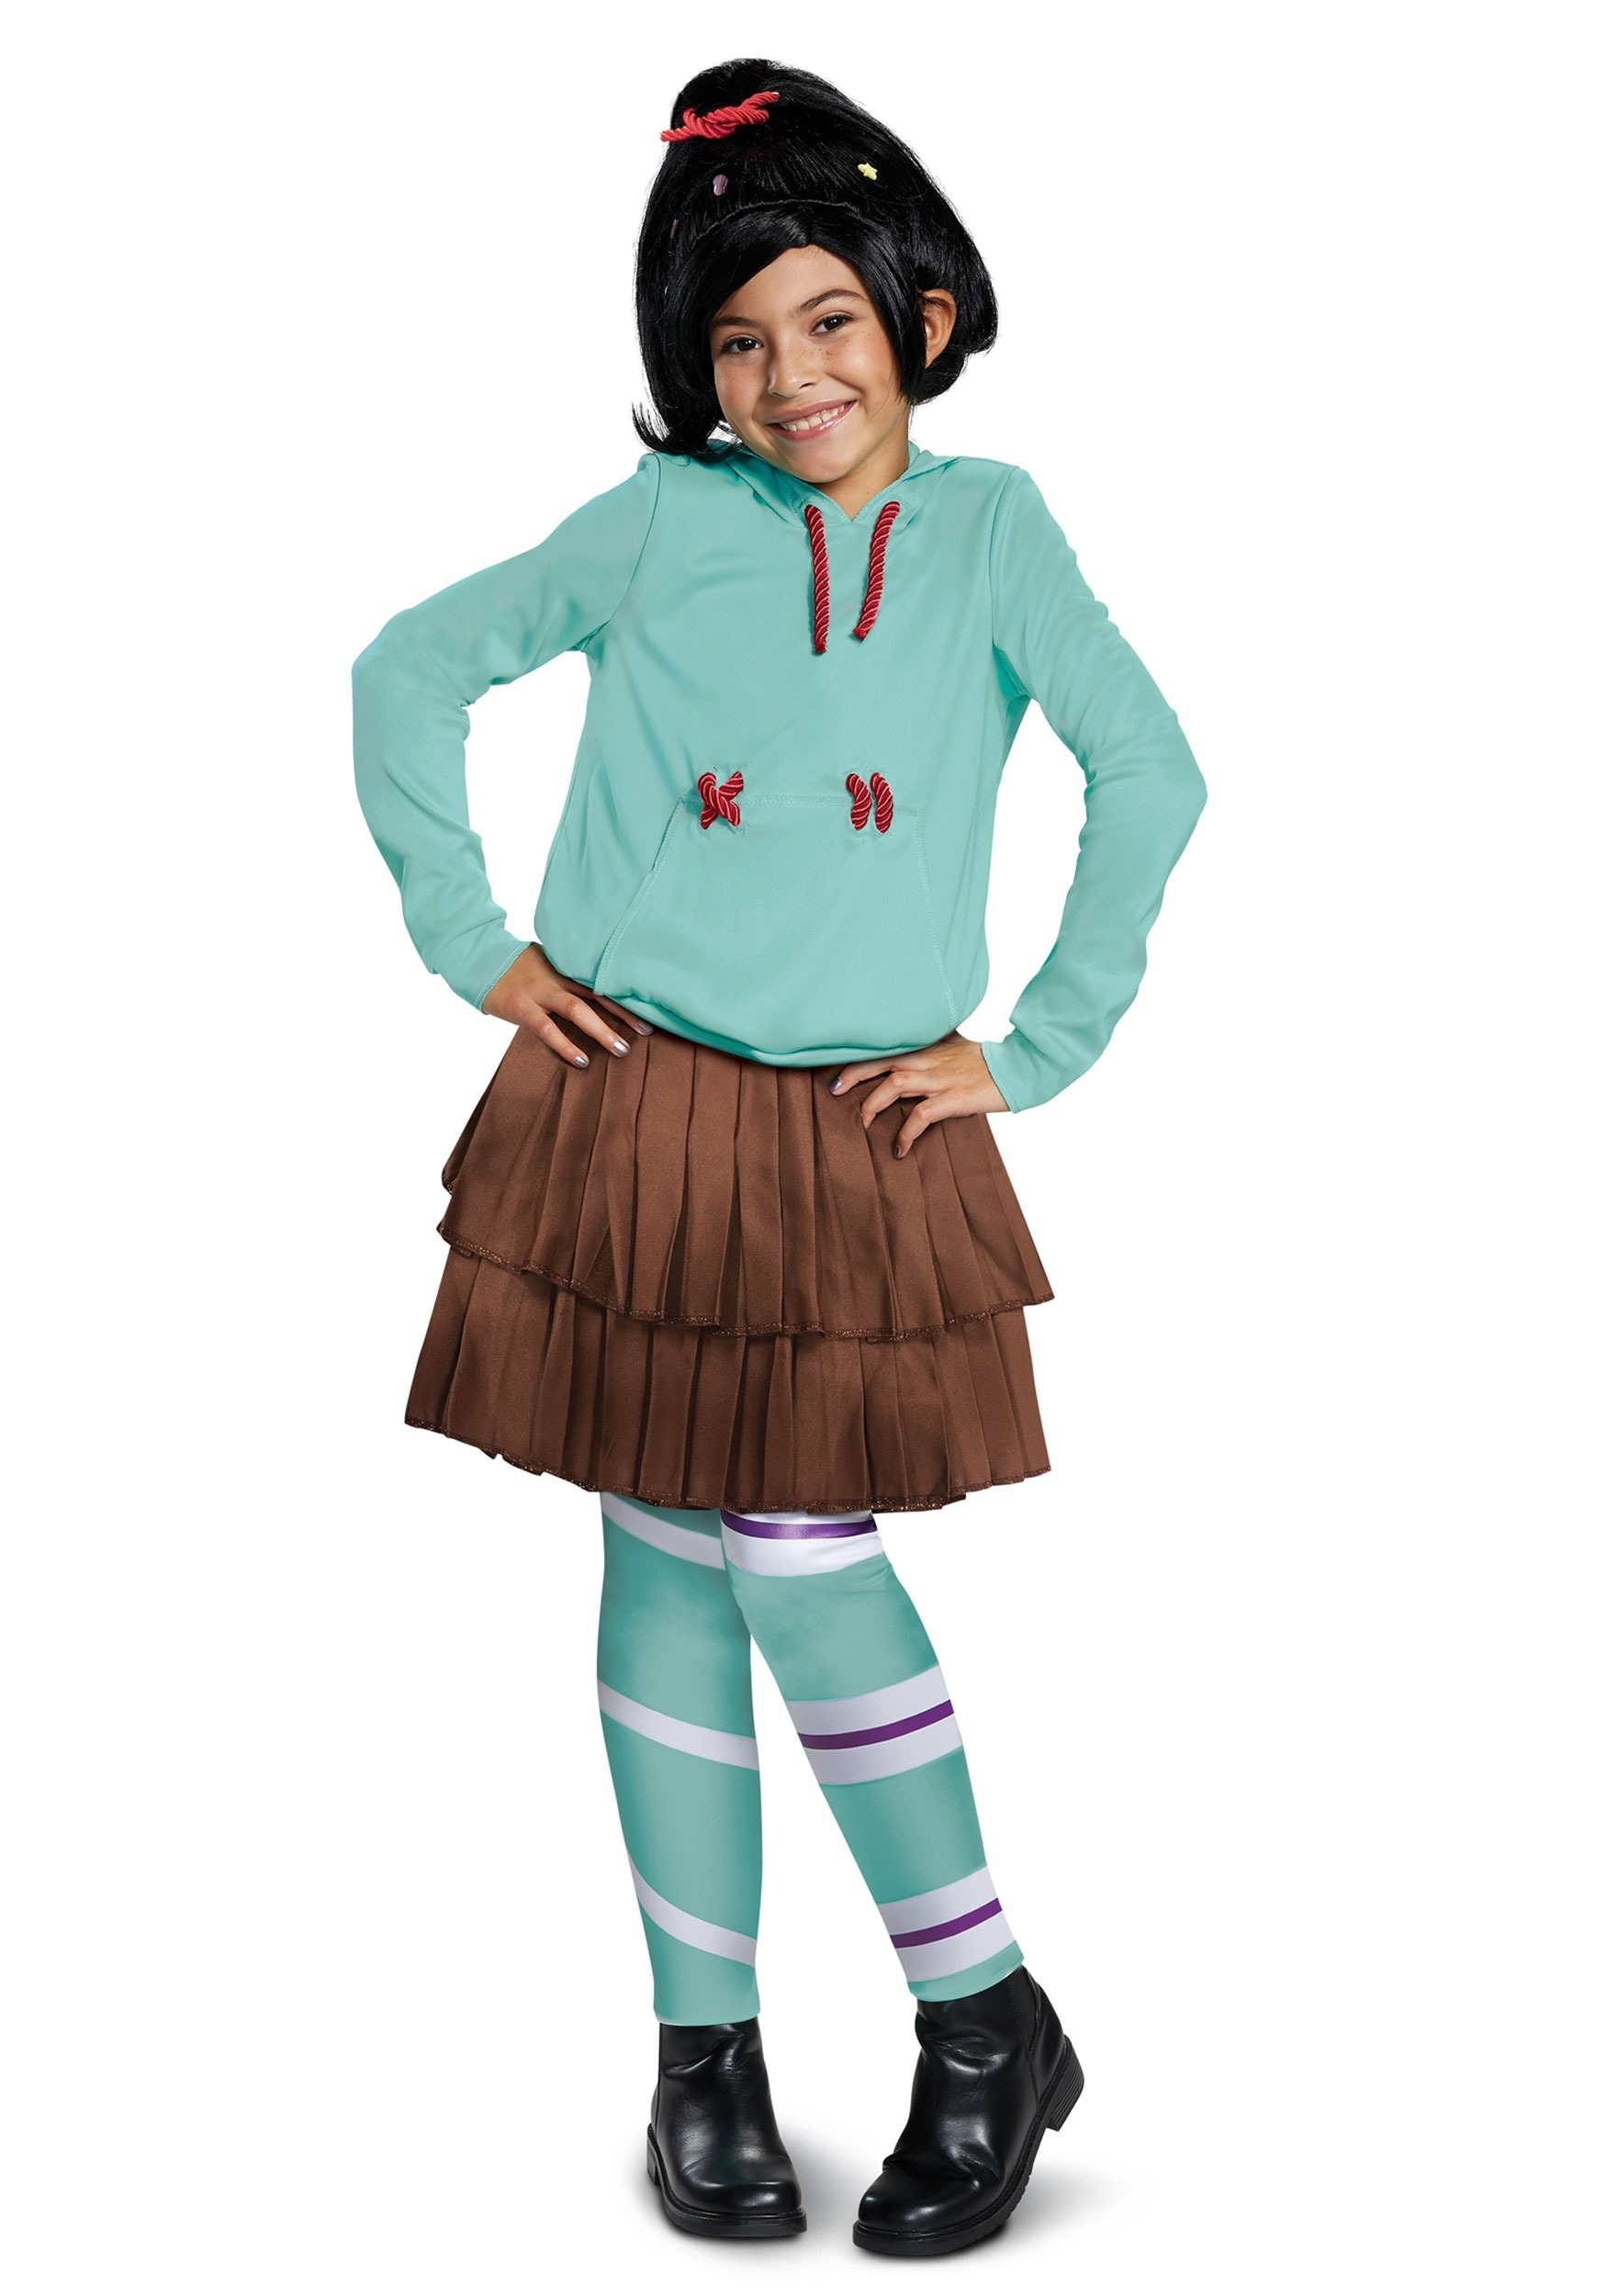 Wreck It Ralph 2 Deluxe Vanellope Costume for Girls